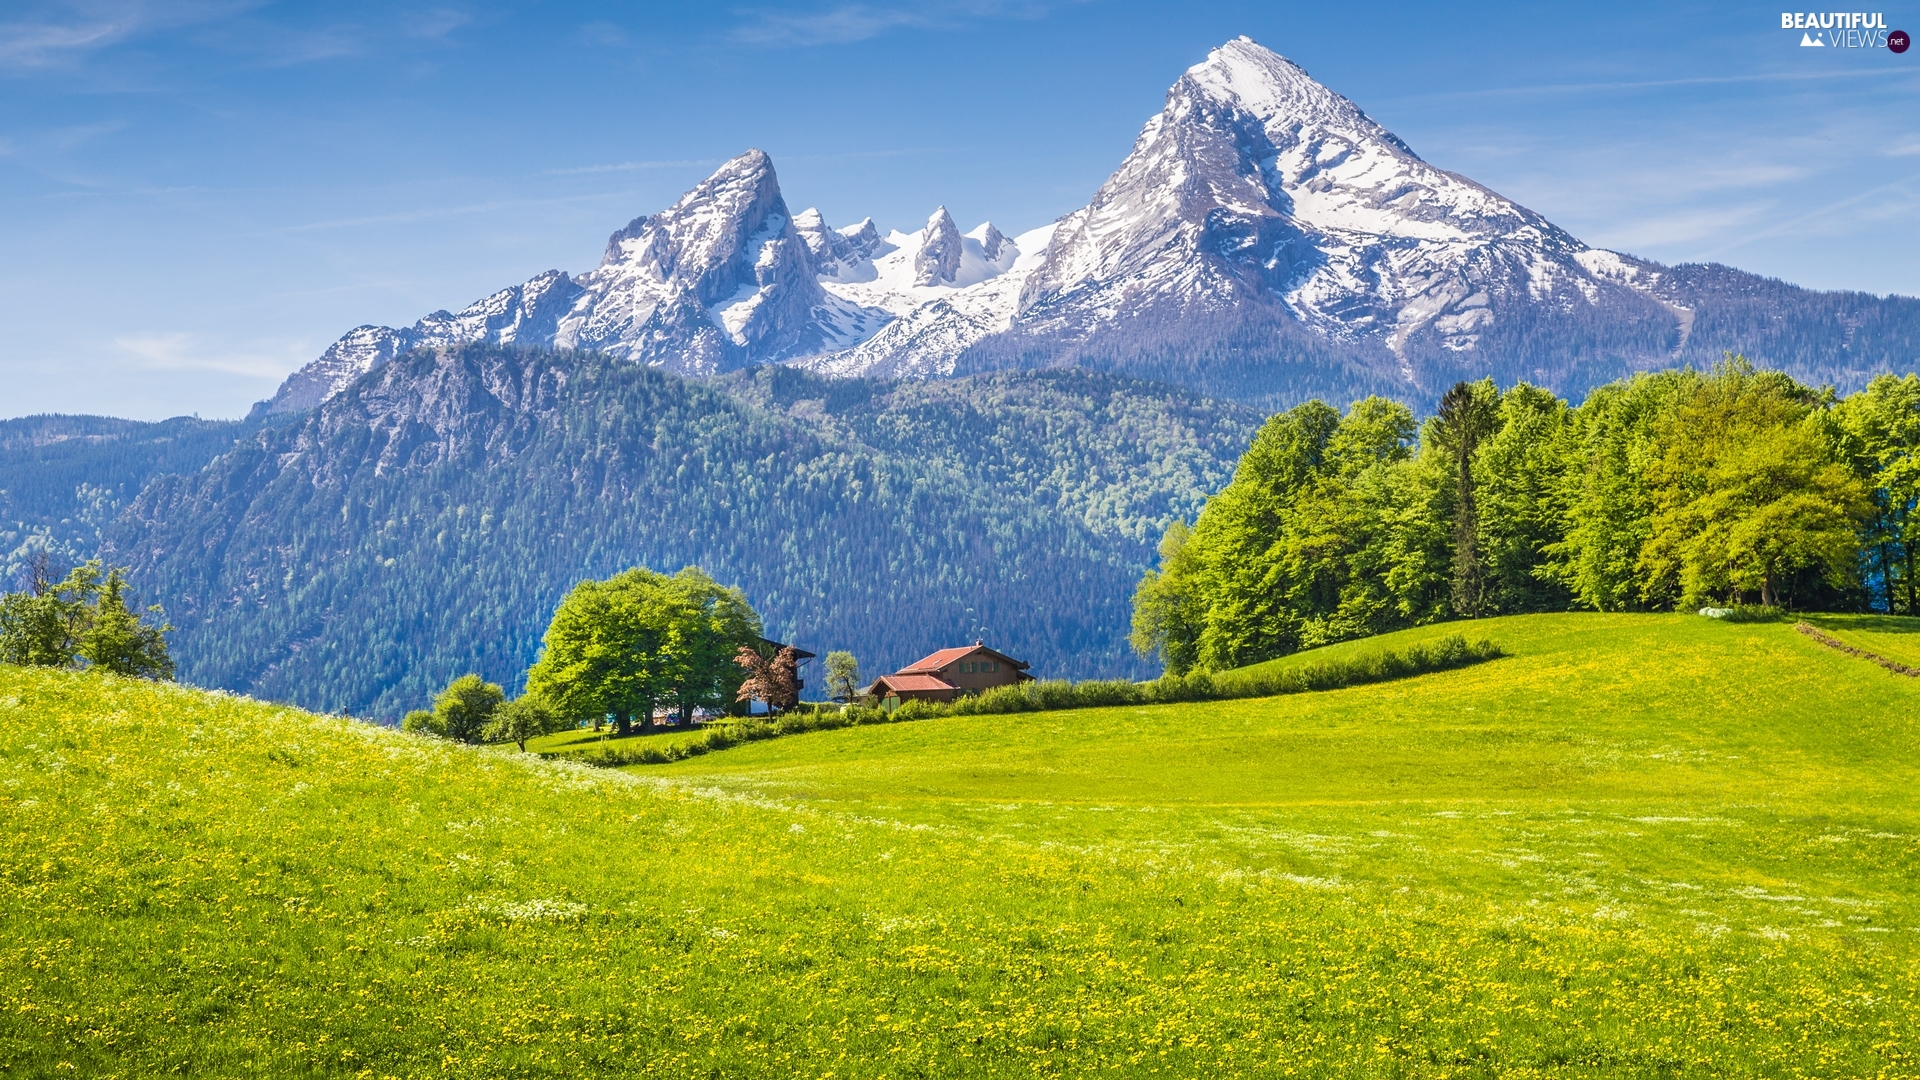 Bavaria, Germany, house, forest, viewes, Alps Mountains, Berchtesgaden National Park, trees